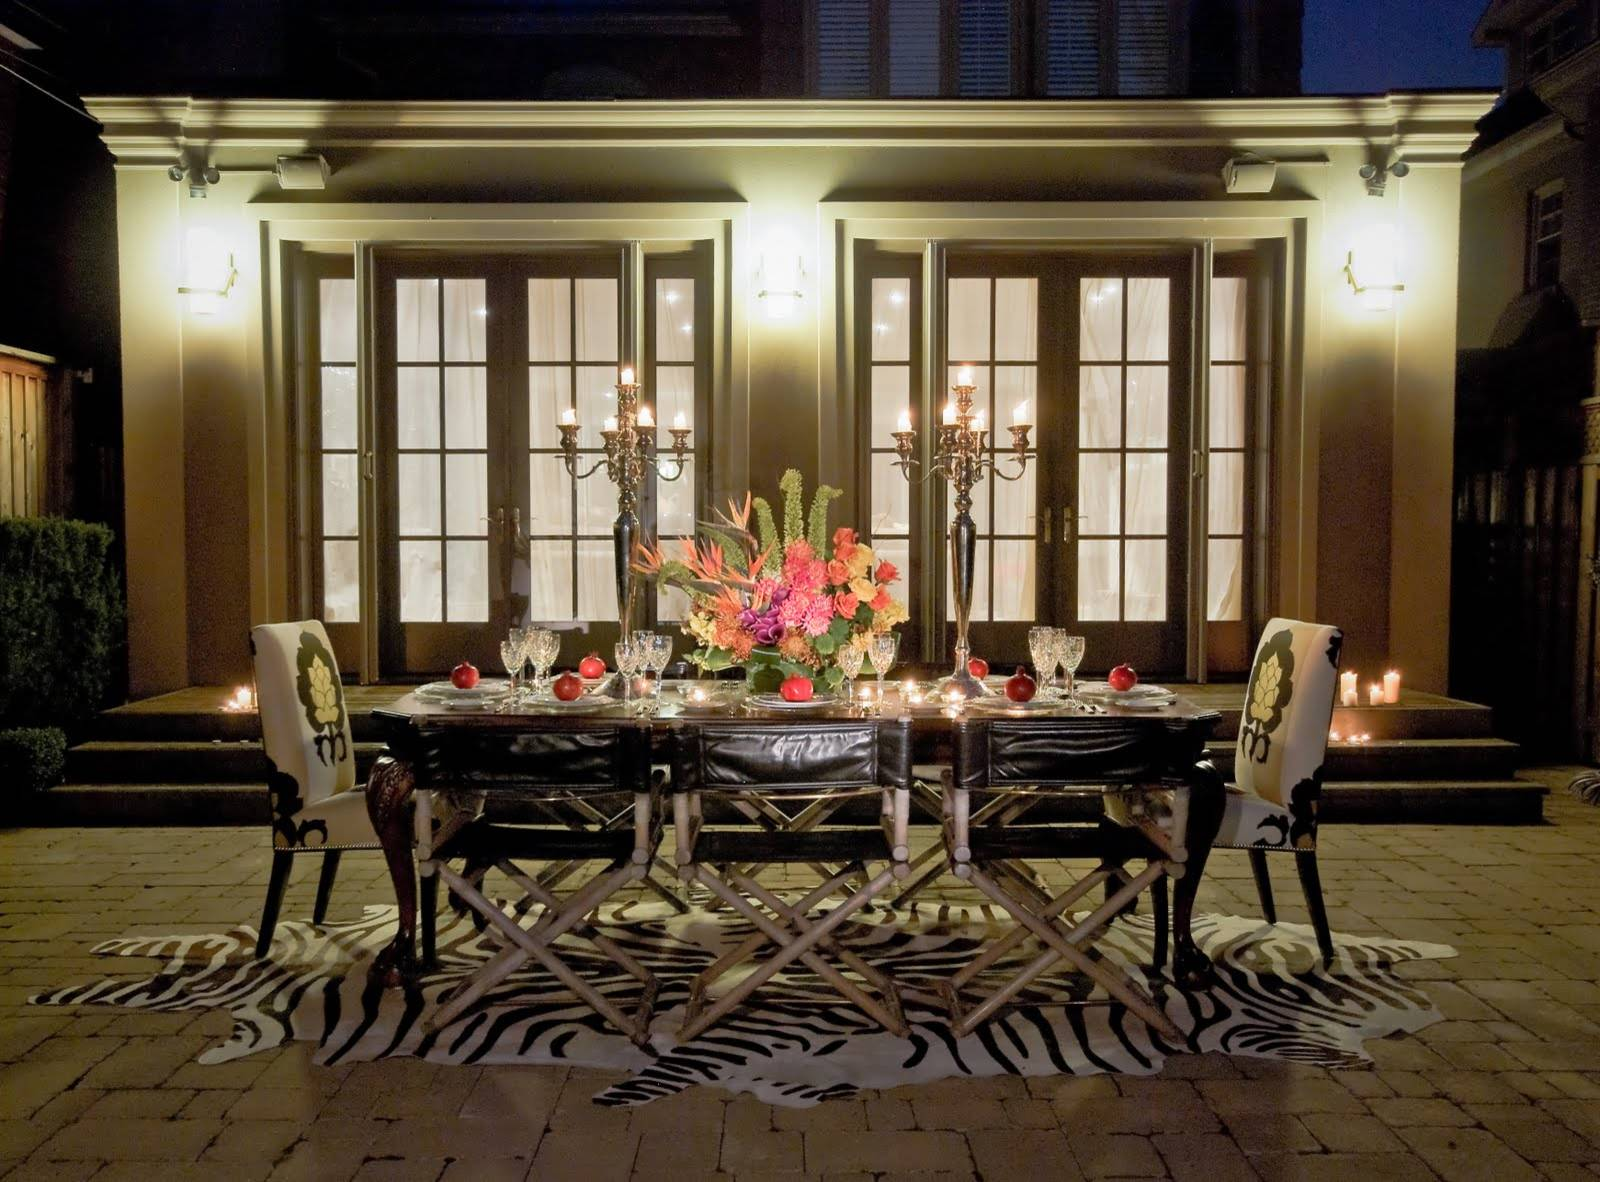 Home Interior Decor with Stunning Zebra Rug: Zebra Rug With Wall Sconces And French Doors Also Floral Arrangement Plus Candelabra And Outdoor Dining Table Also Crown Molding For Modern Patio Furniture